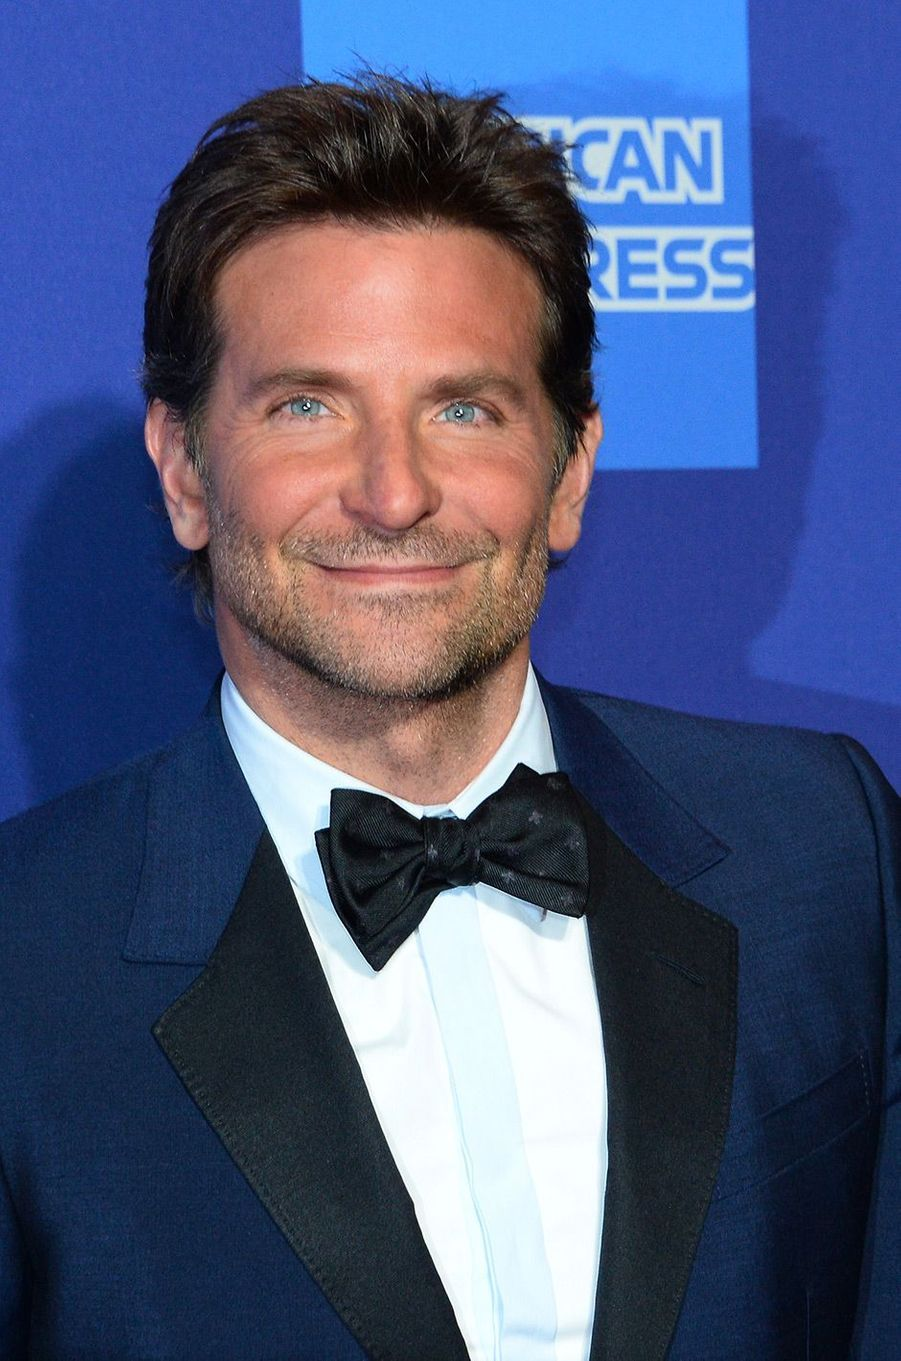 Bradley Cooper au festival du film international de Palm Springs, jeudi 3 janvier